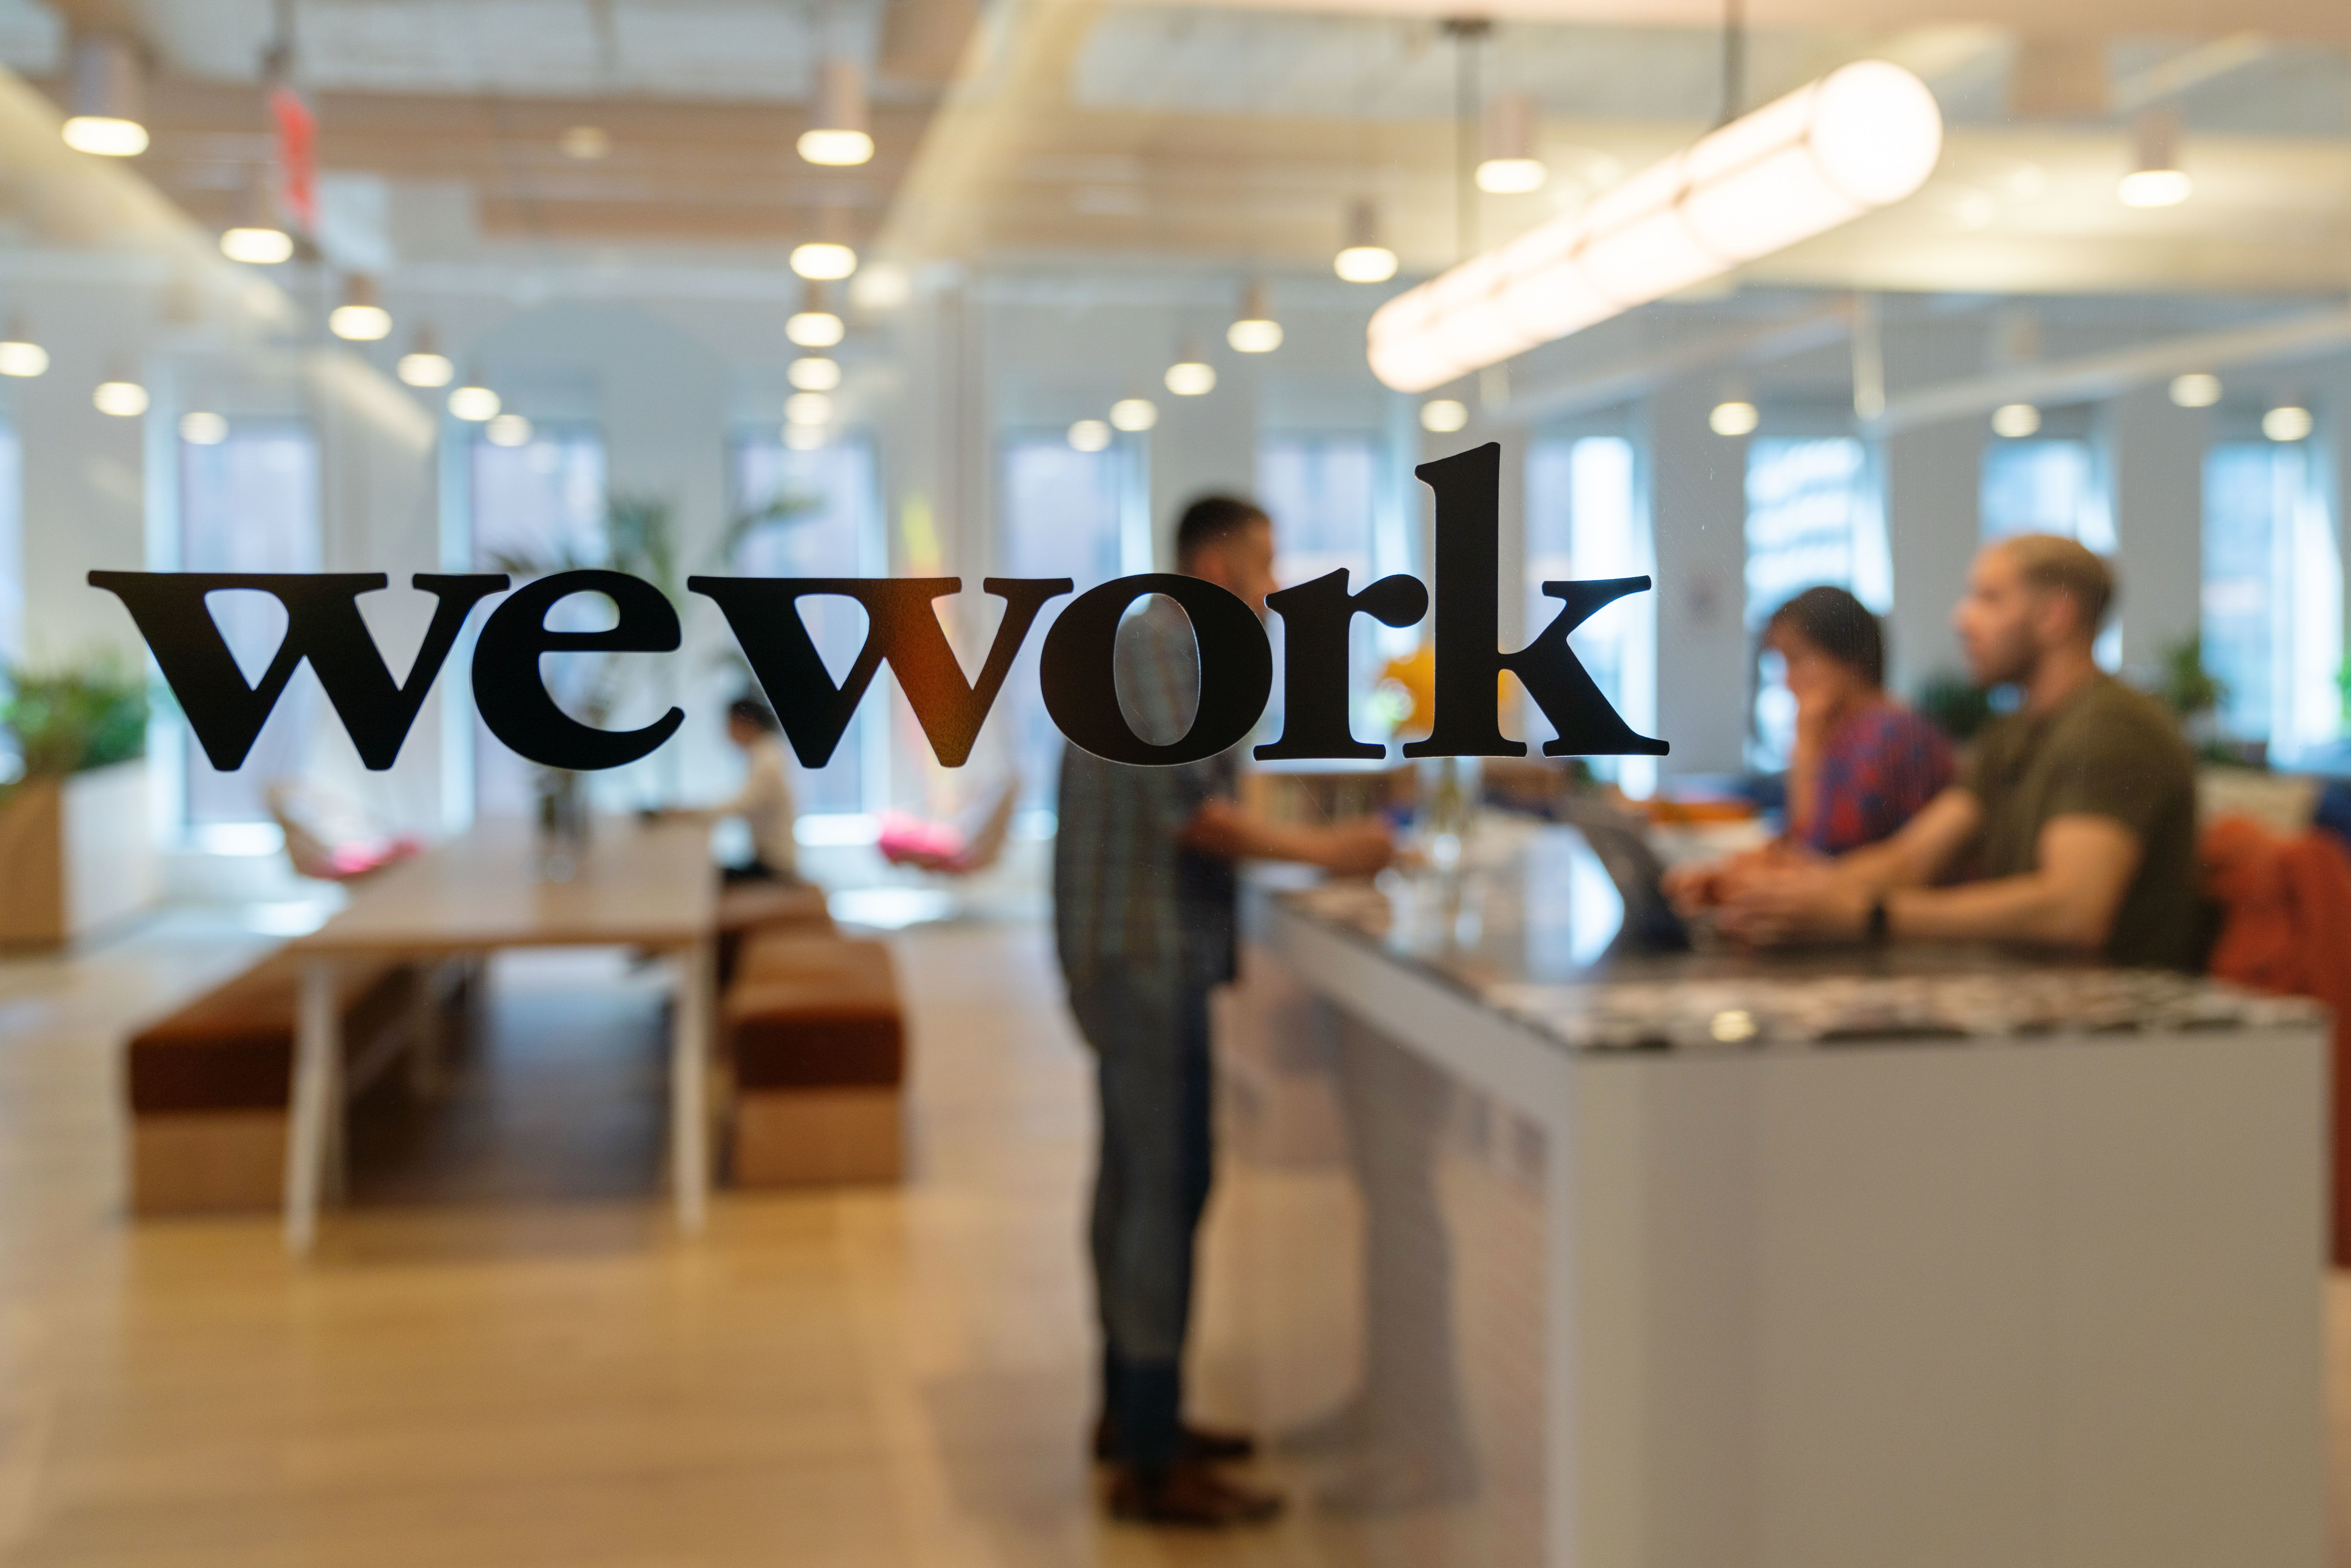 WeWork IPO filing sells a romantic vision alongside losses